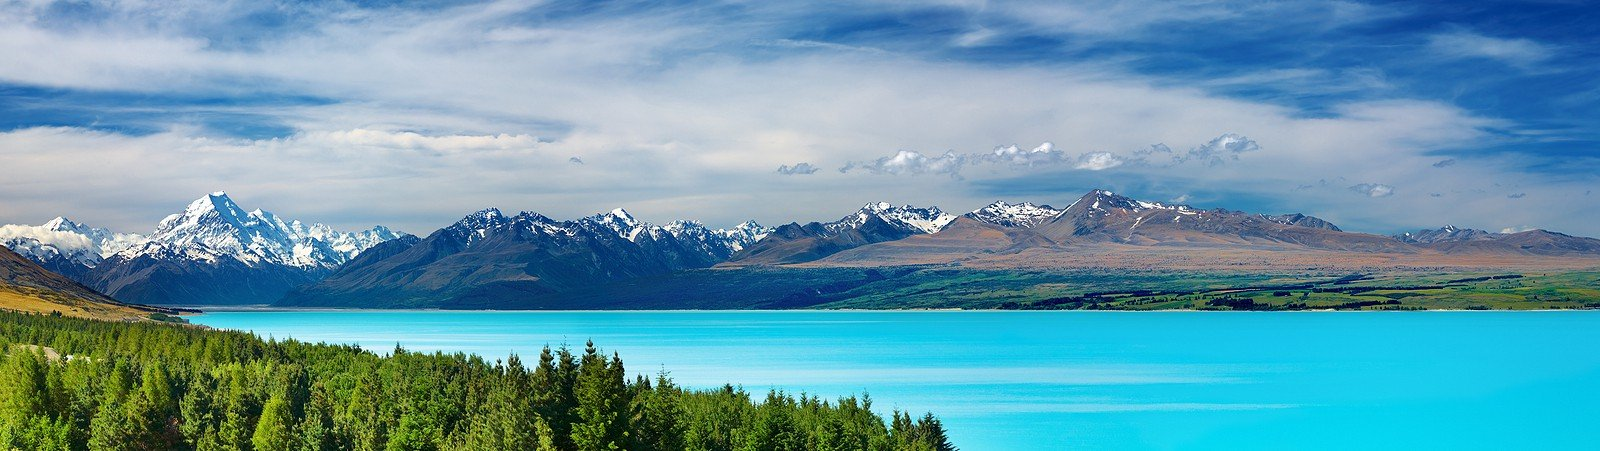 Aoraki-Mount-Cook-and-Pukaki-Lake-visa-news-rospersonal-Mikhaylov-Evgeny-Matveevich-Immigration-Agent-Moscow.jpeg